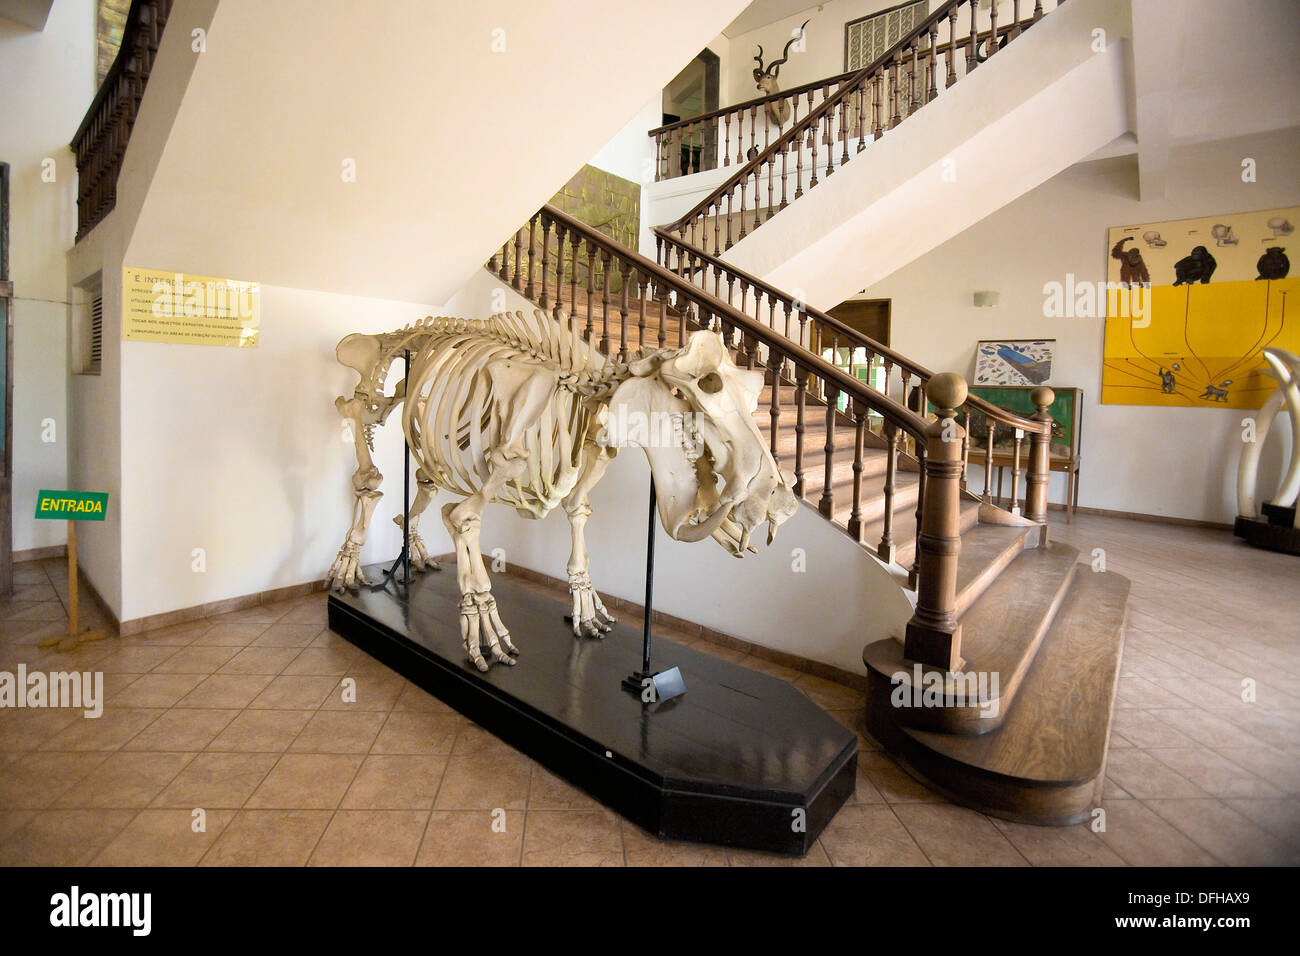 Entry to the Museum of Natural Sciences of Mozambique - Stock Image